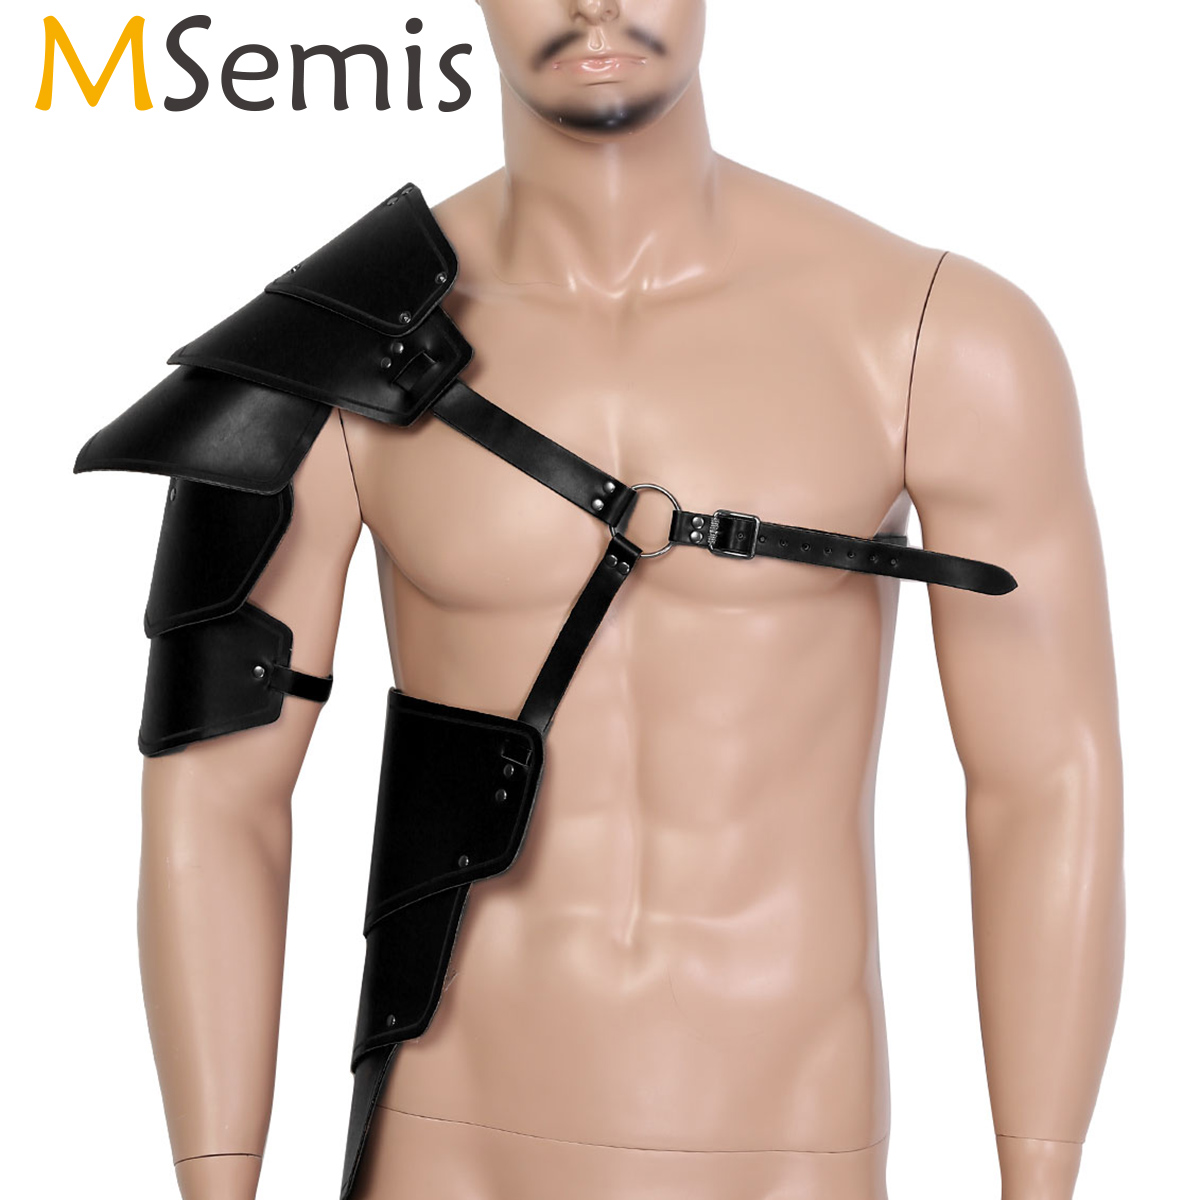 MSemis Mens Medieval Steampunk Gothic Leather Single Shoulder Armors Arm Warmers Protector Body Chest Harness Cosplay Accessory